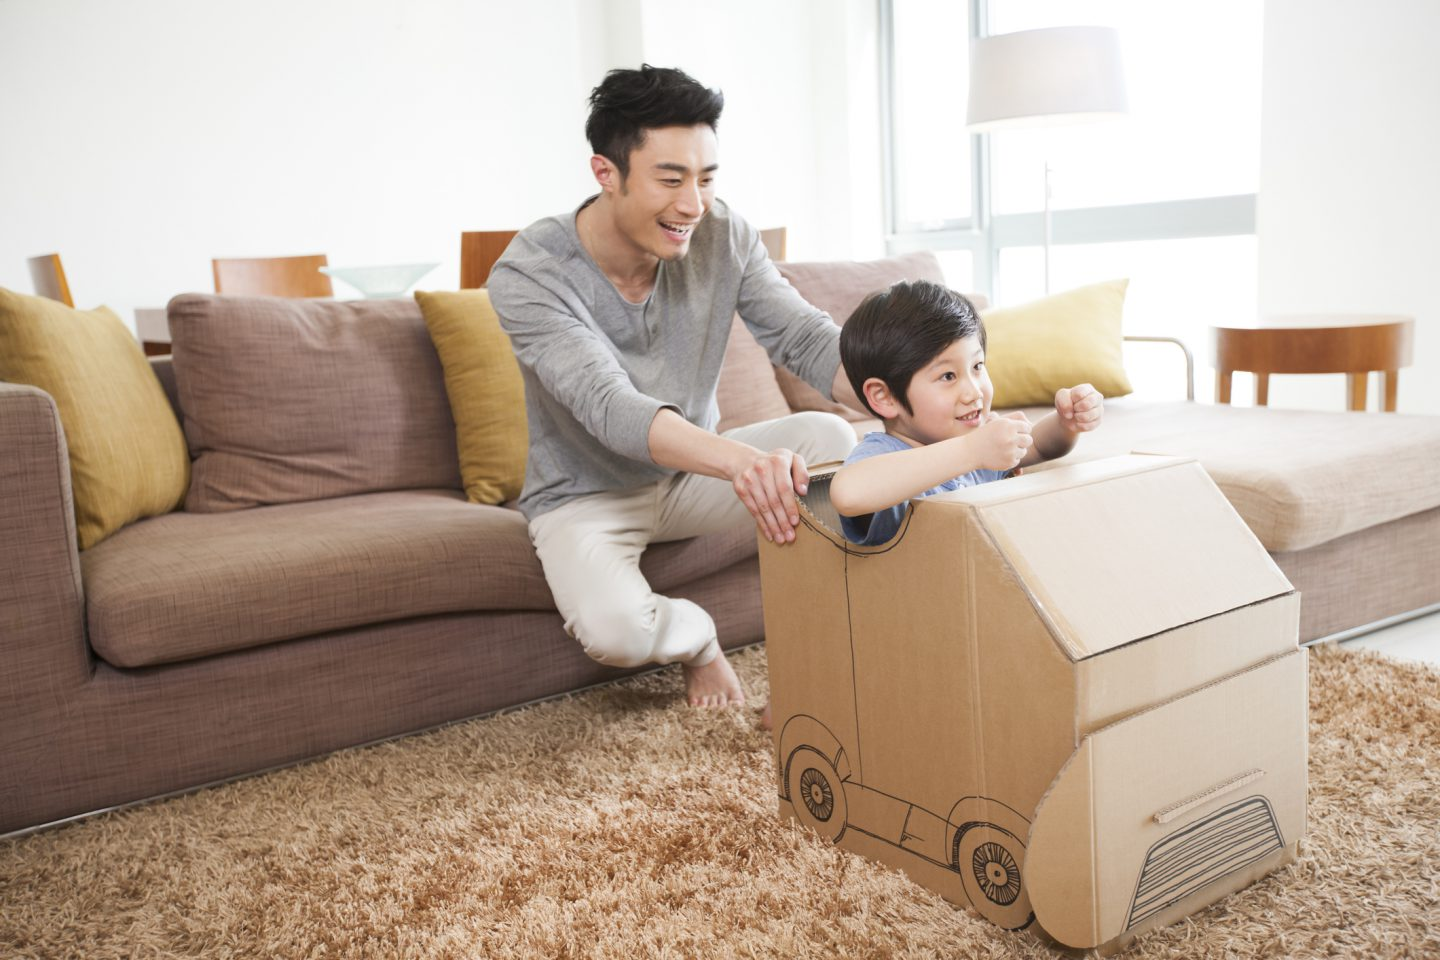 Father and son playing carton car in living room - FWD Car Insurance Singapore